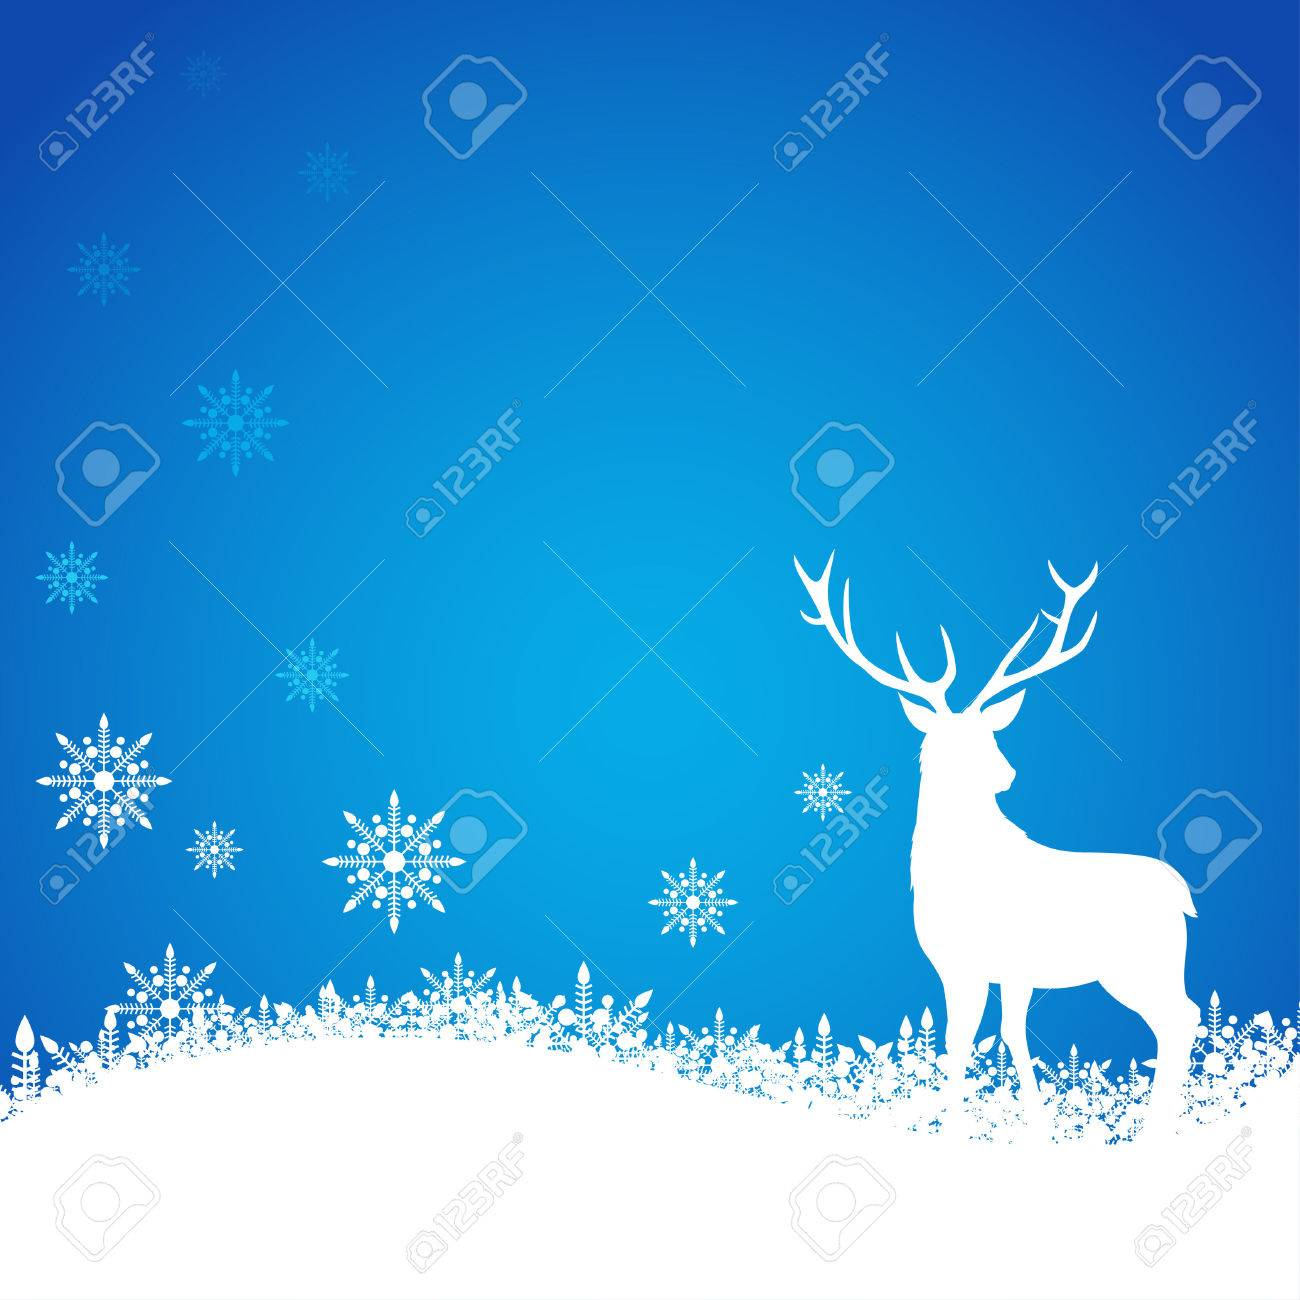 blank template for cover background or card design christmas blank template for cover background or card design christmas theme stock vector 47422808